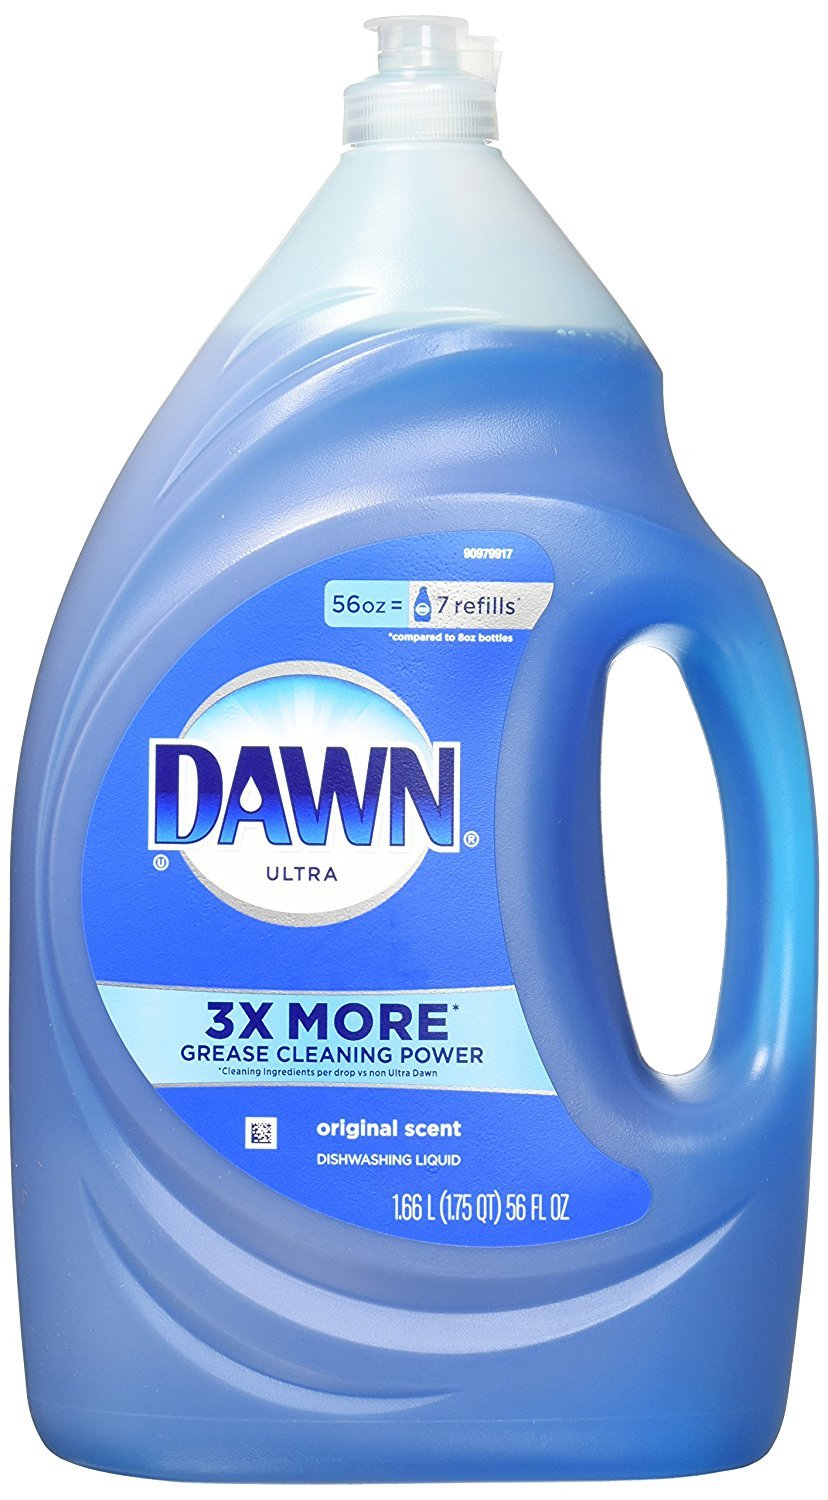 Dawn RCdJHO Ultra Dishwashing Liquid Dish Soap, Original Scent (Packaging May Vary), 56 Ounce, 10 Count by Dawn